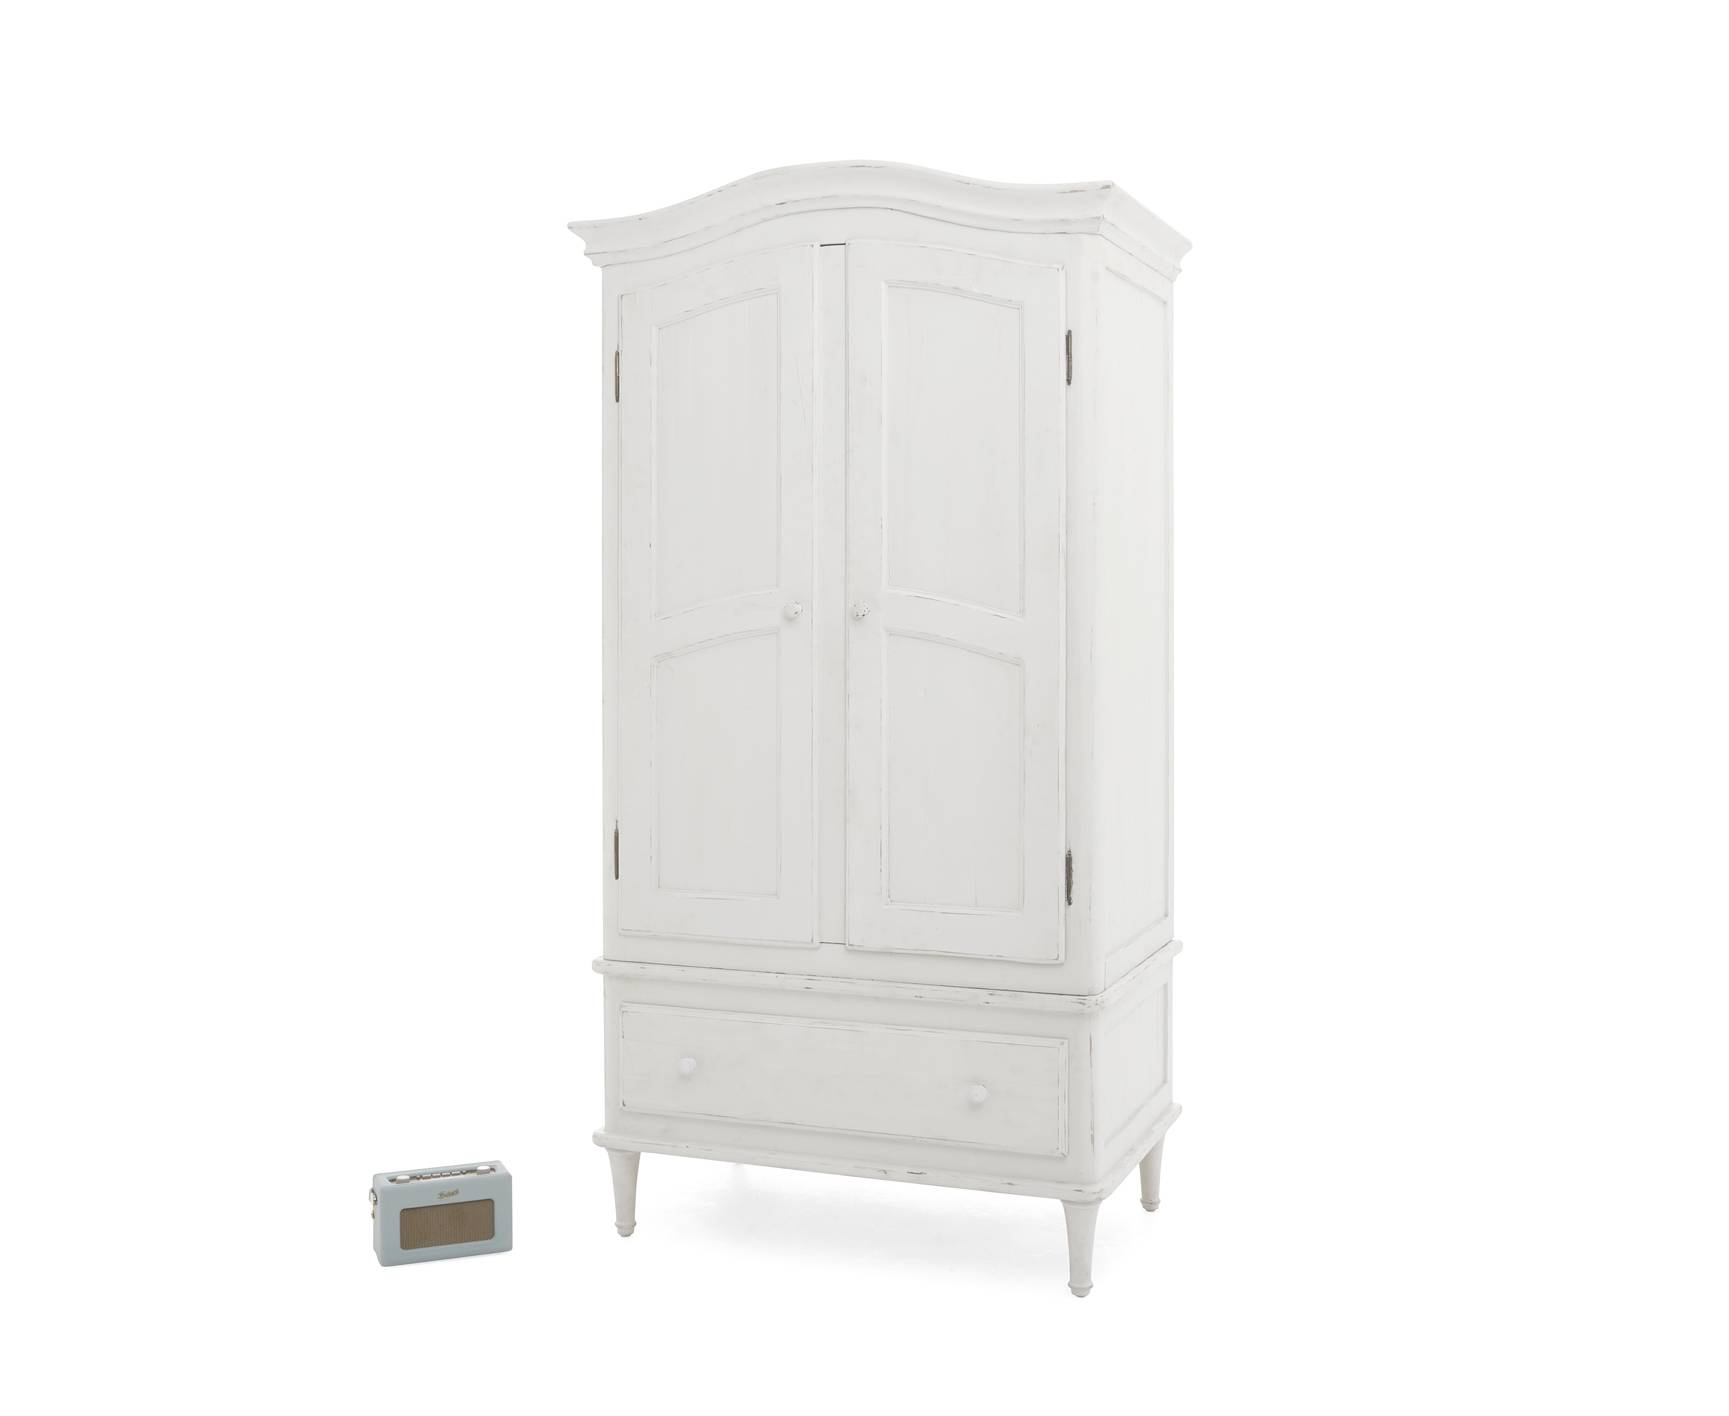 Timbers Wardrobe | White Painted Wardrobe | Loaf inside Vintage Style Wardrobes (Image 11 of 15)